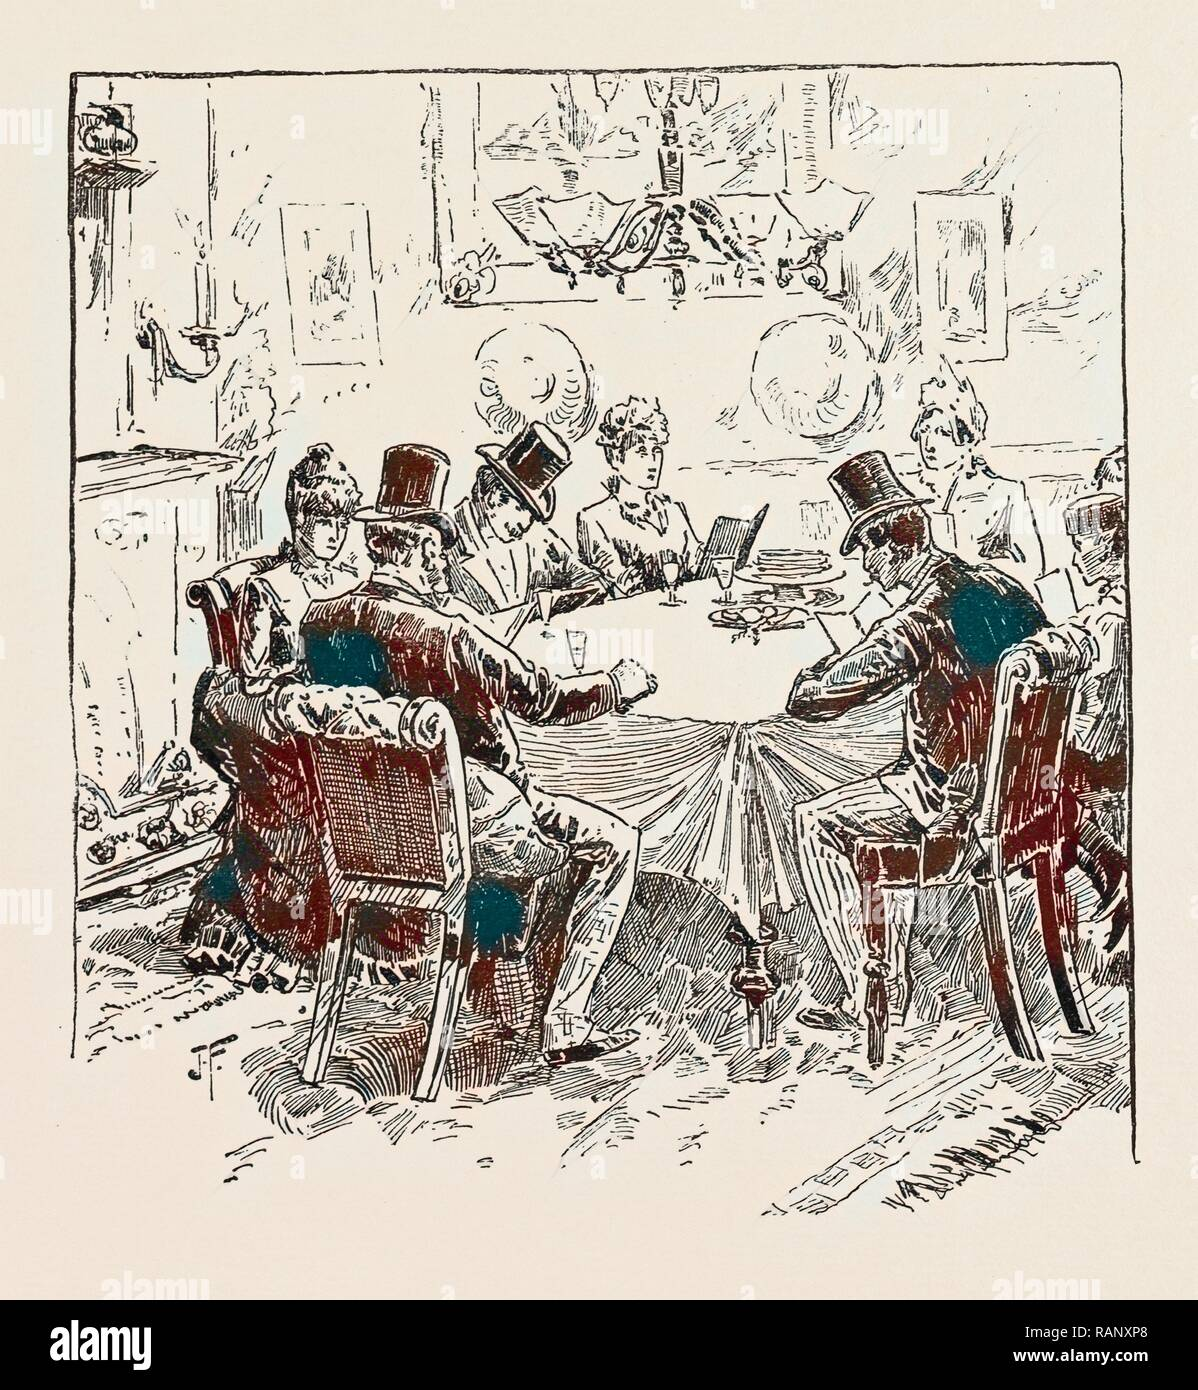 PASSOVER EVE, THE 'SEDER' SERVICE, 1889. Reimagined by Gibon. Classic art with a modern twist reimagined - Stock Image